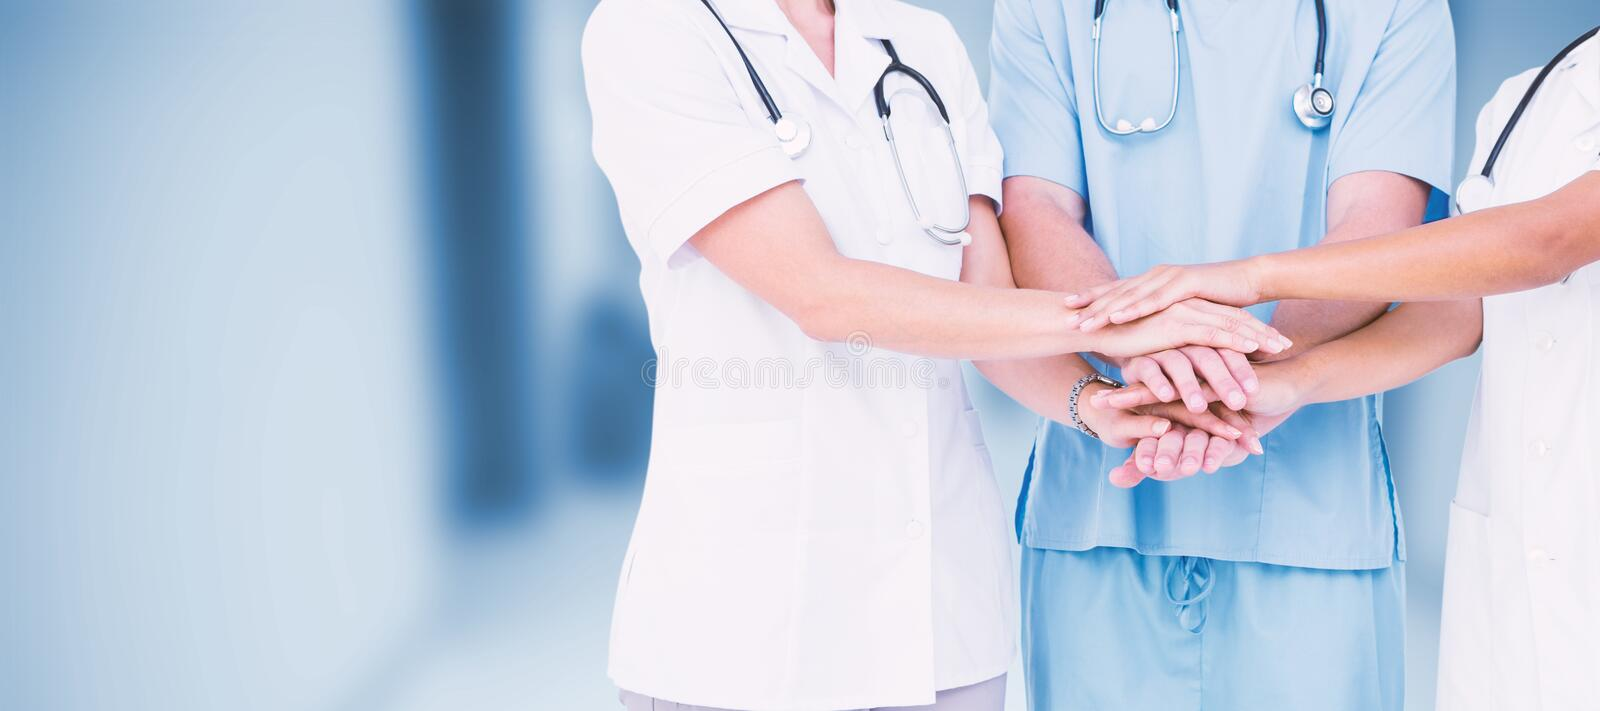 Composite image of midsection of doctors putting hands together royalty free stock photos